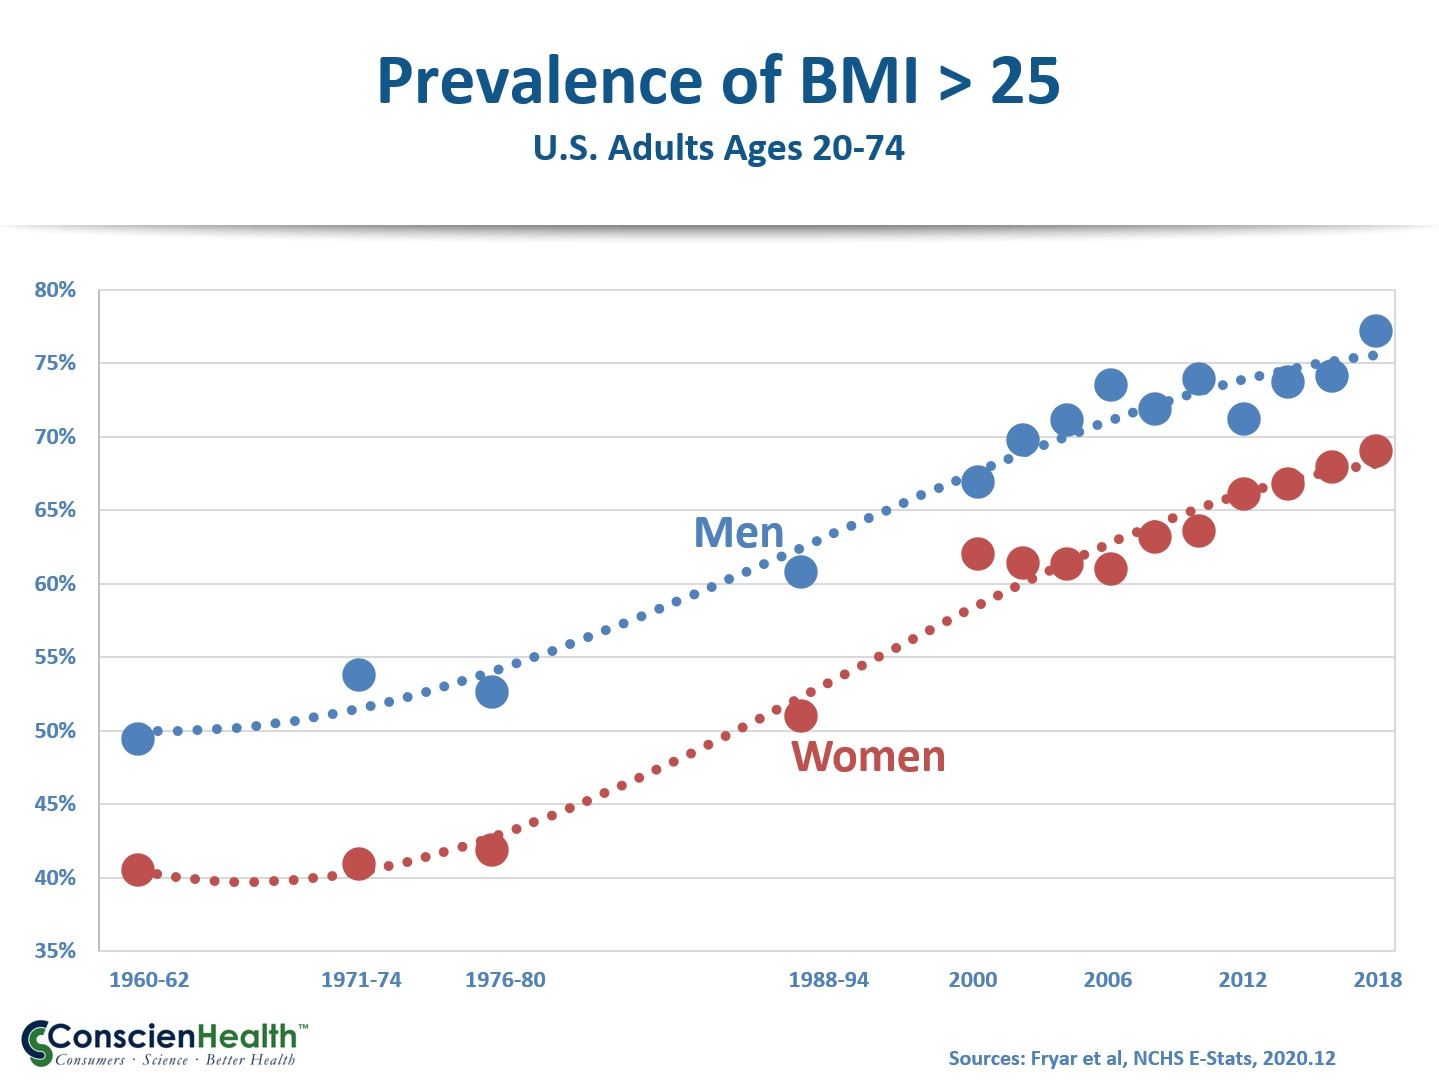 Prevalence of BMI Over 25